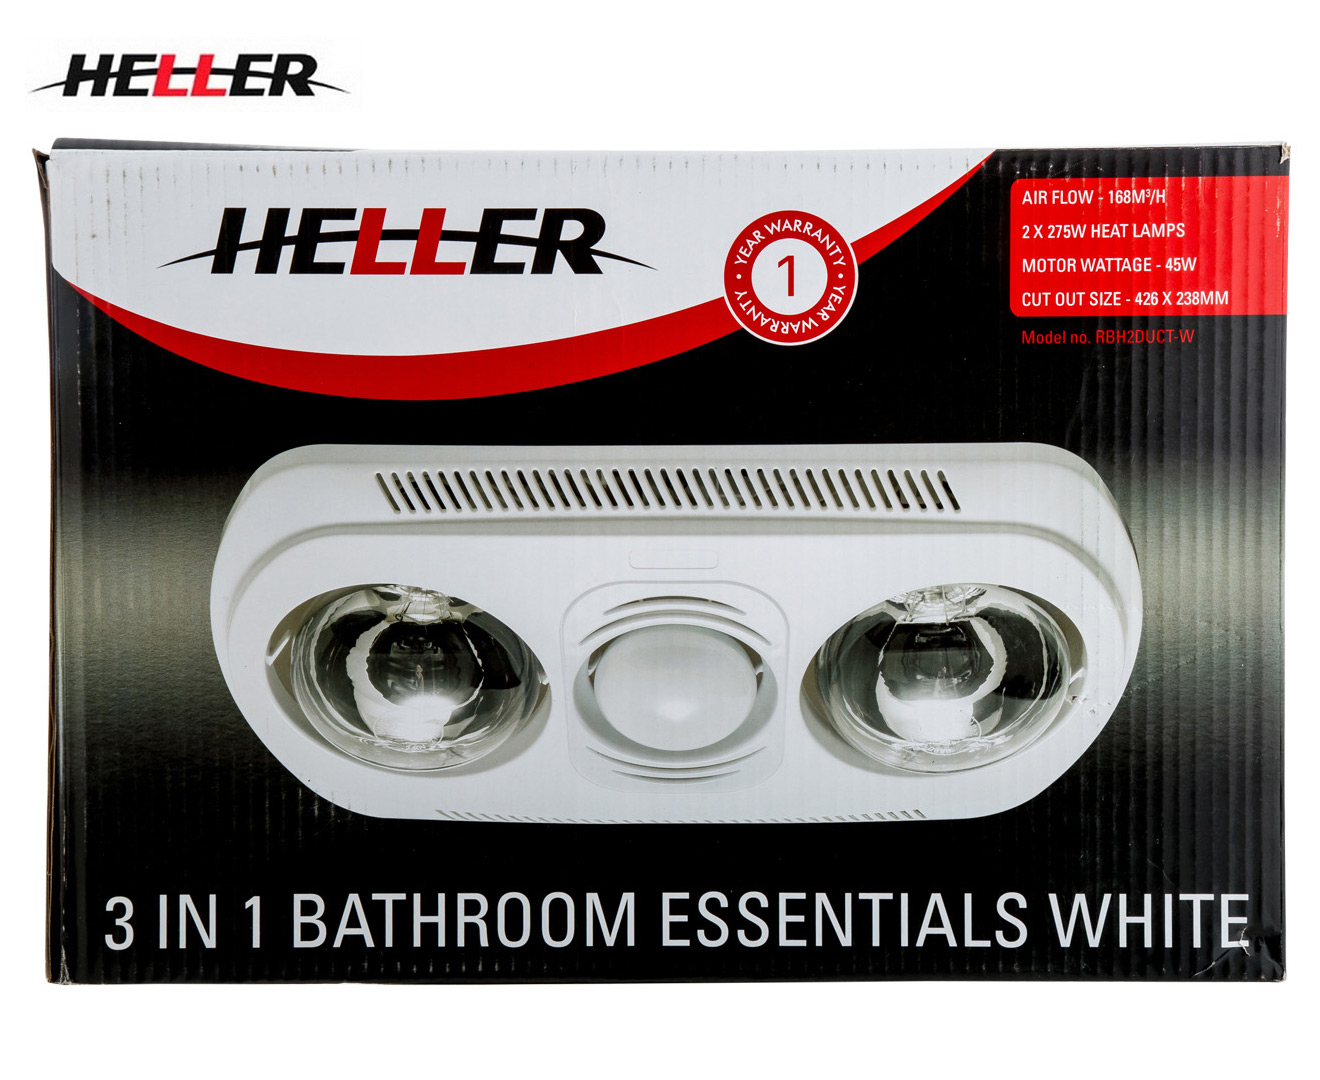 Heller 2 Heat 3 In 1 Bathroom Essential White Great Daily Deals At Australia 39 S Favourite